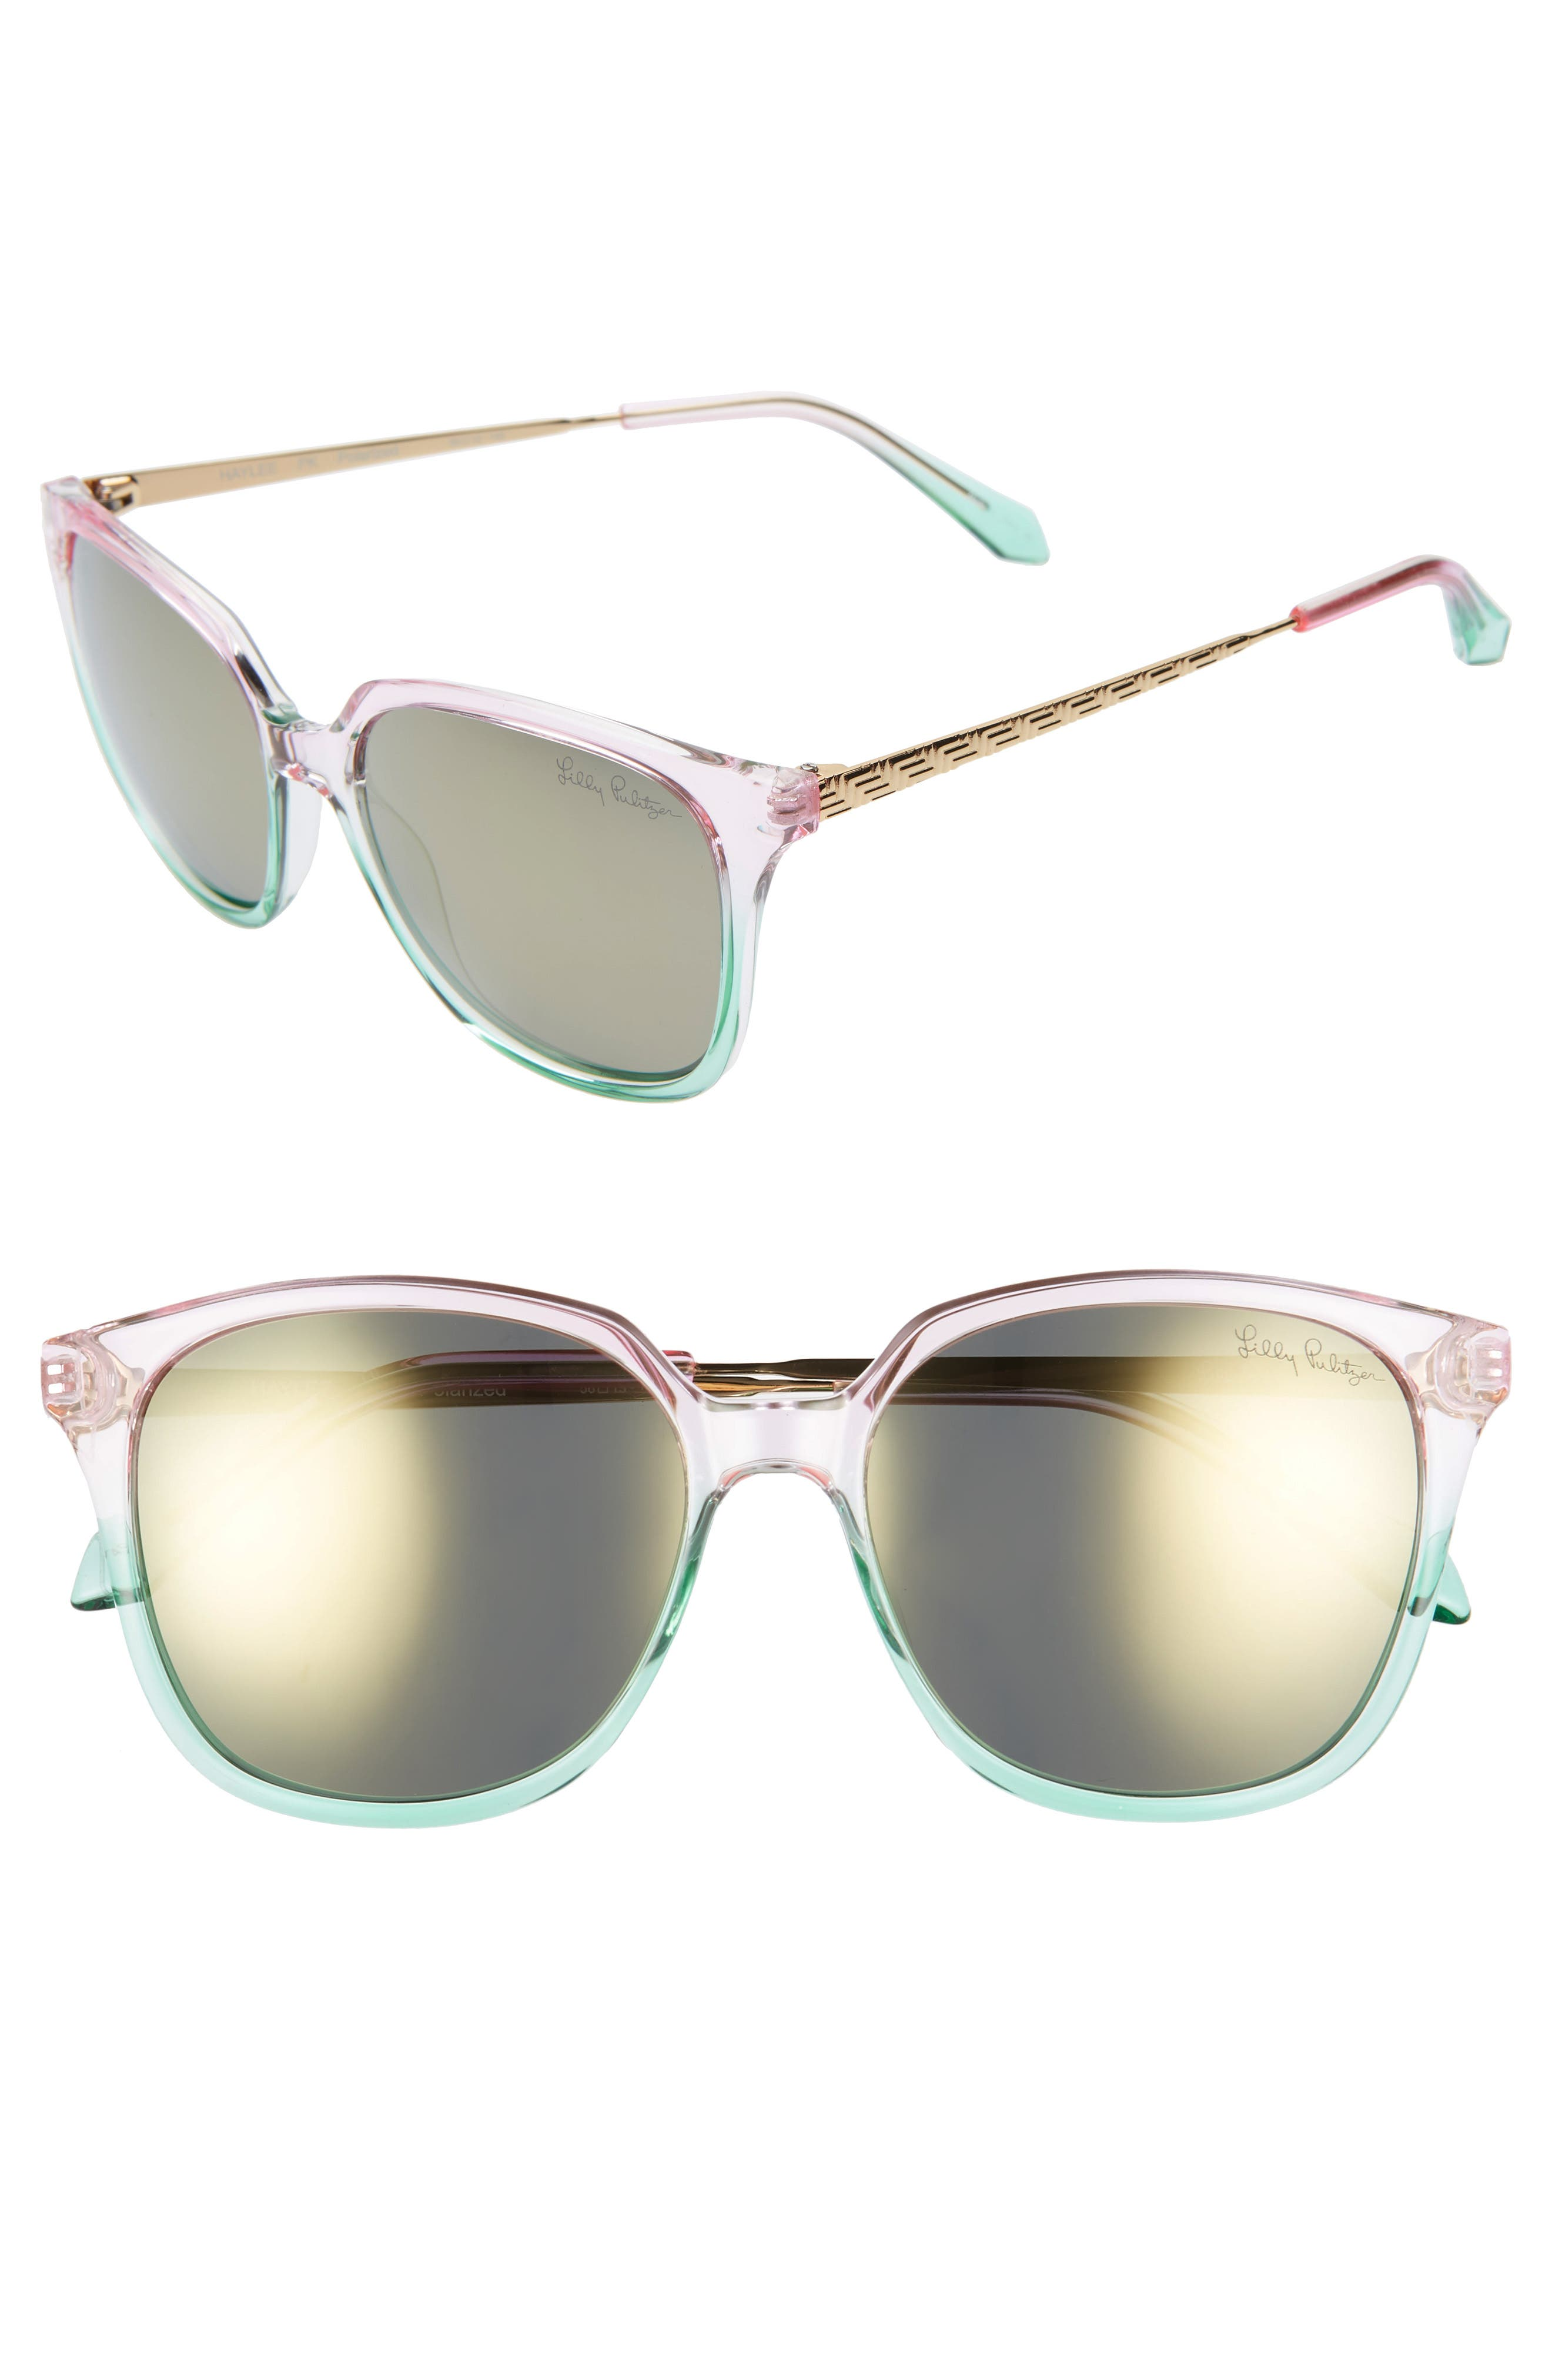 Lilly Pulitzer Haylee 5m Sunglasses - Crystal Pink To Green/ Silver